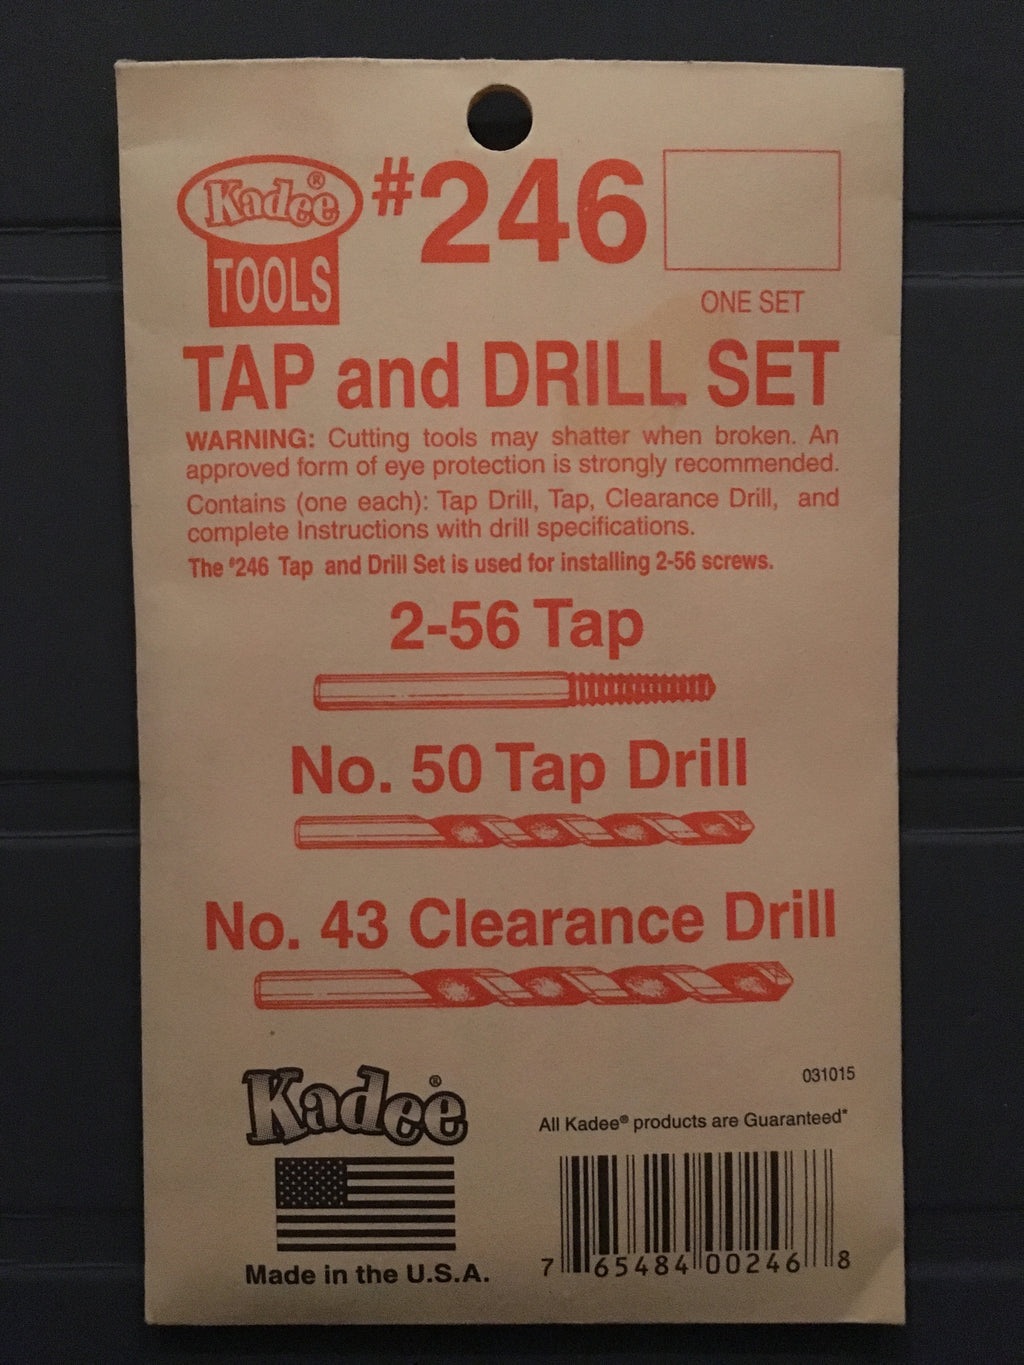 # 246 Tap 2-56 and Drills #50 and #43 kadee